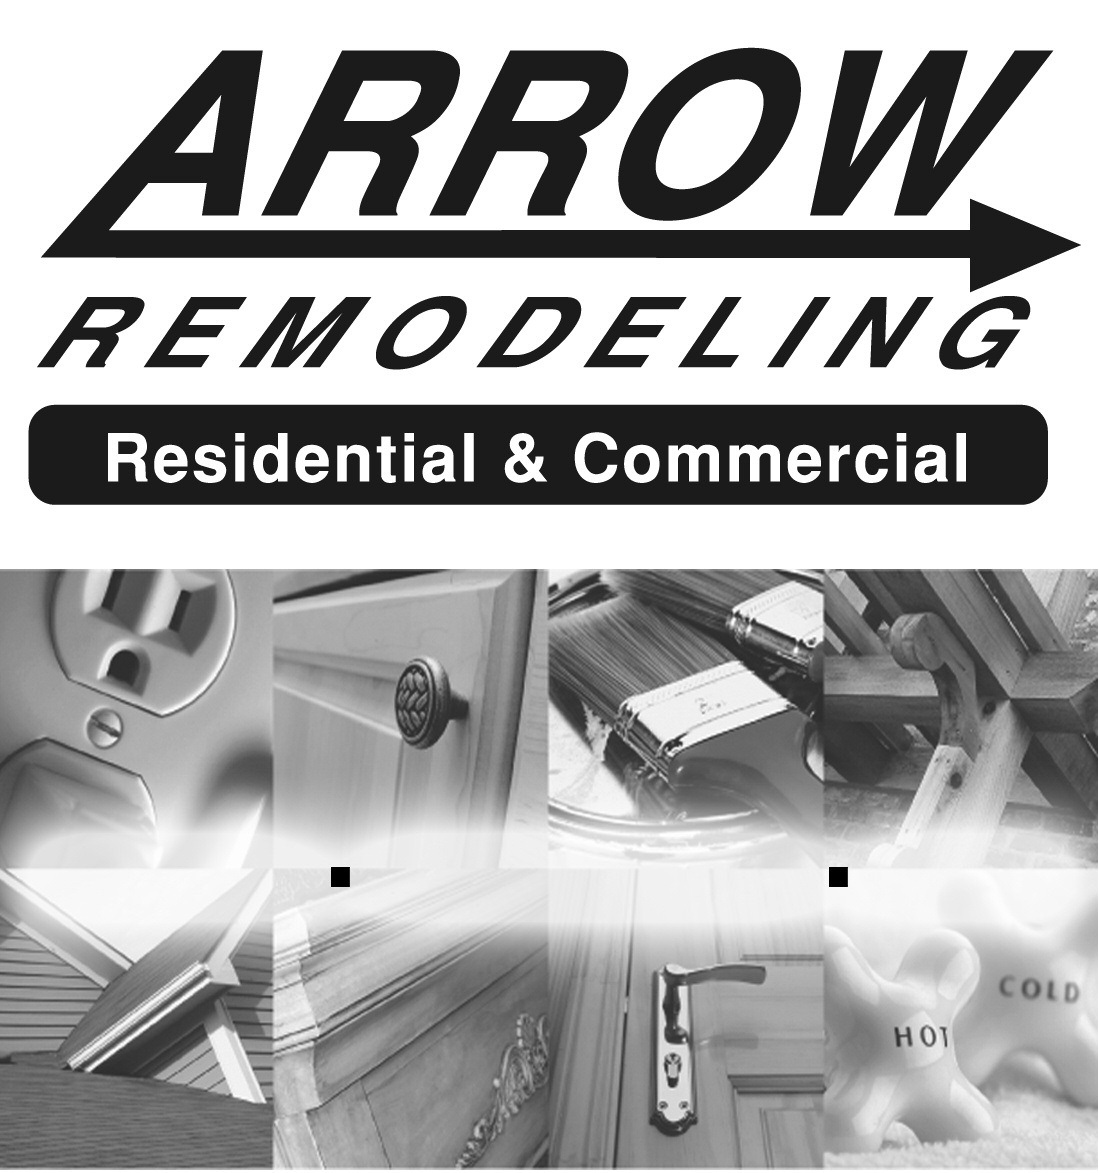 Arrow Remodeling Inc image 0